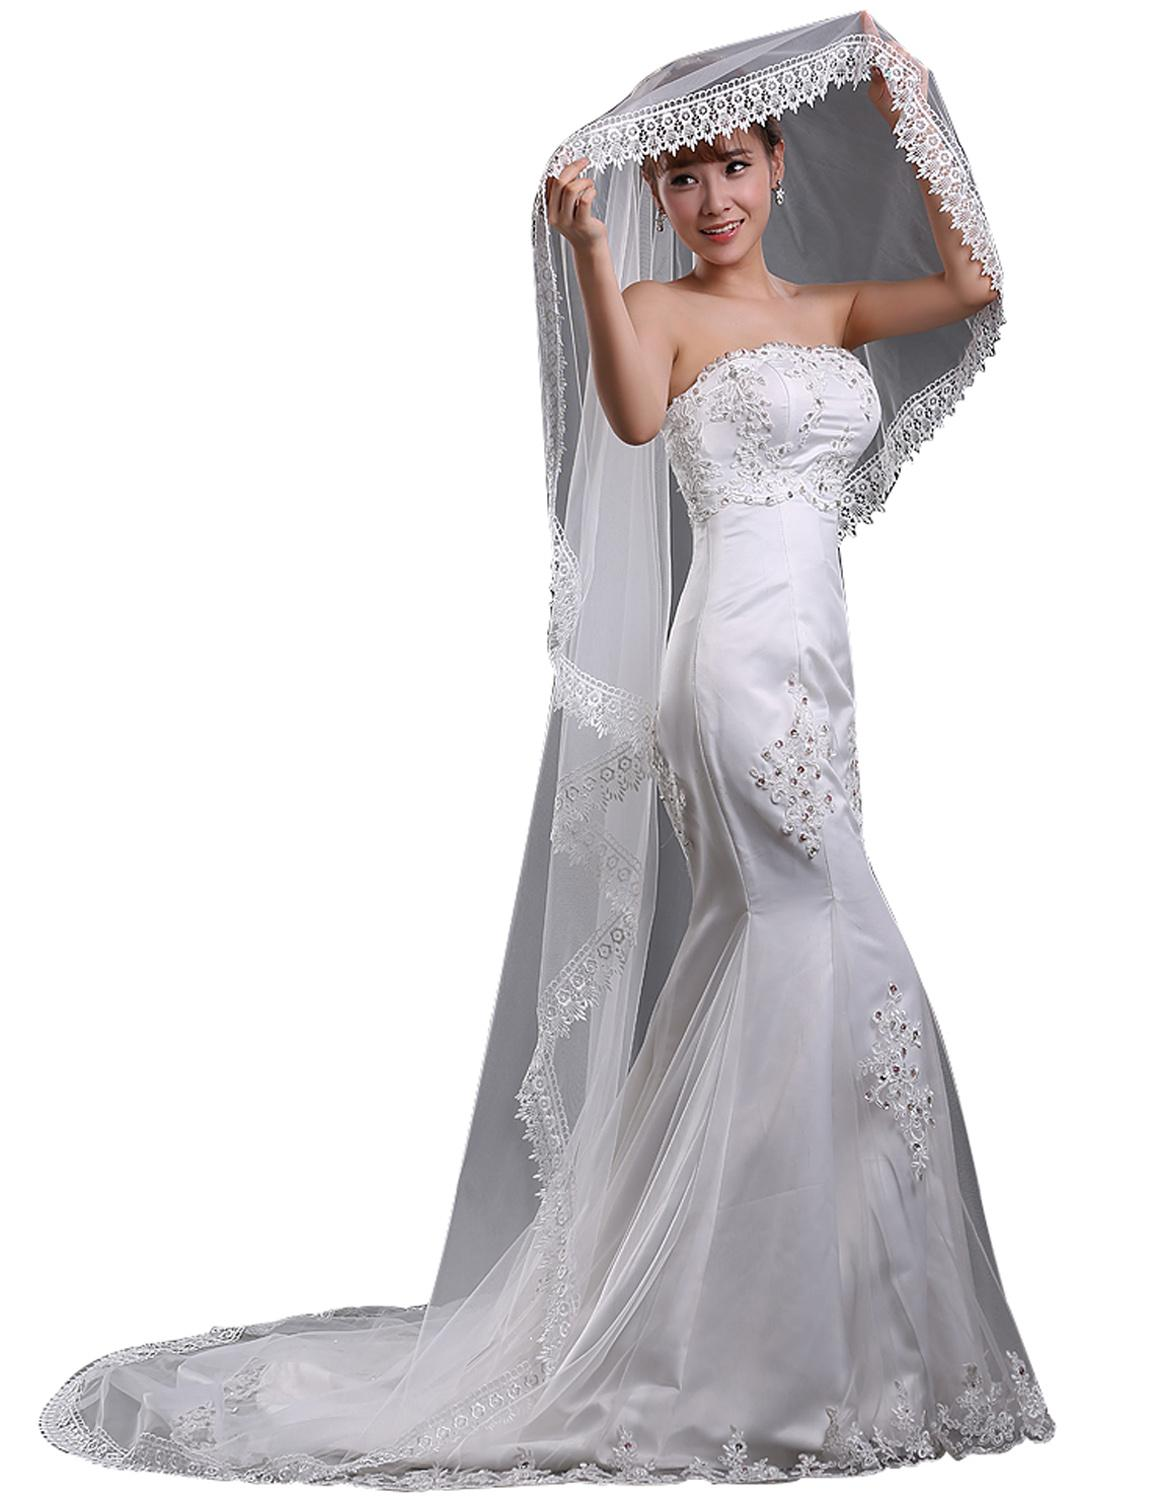 2016 In Stock Cheap 3m Length Wedding Veils Ivory One Layer Lace Bridal Veils Appliques Wedding